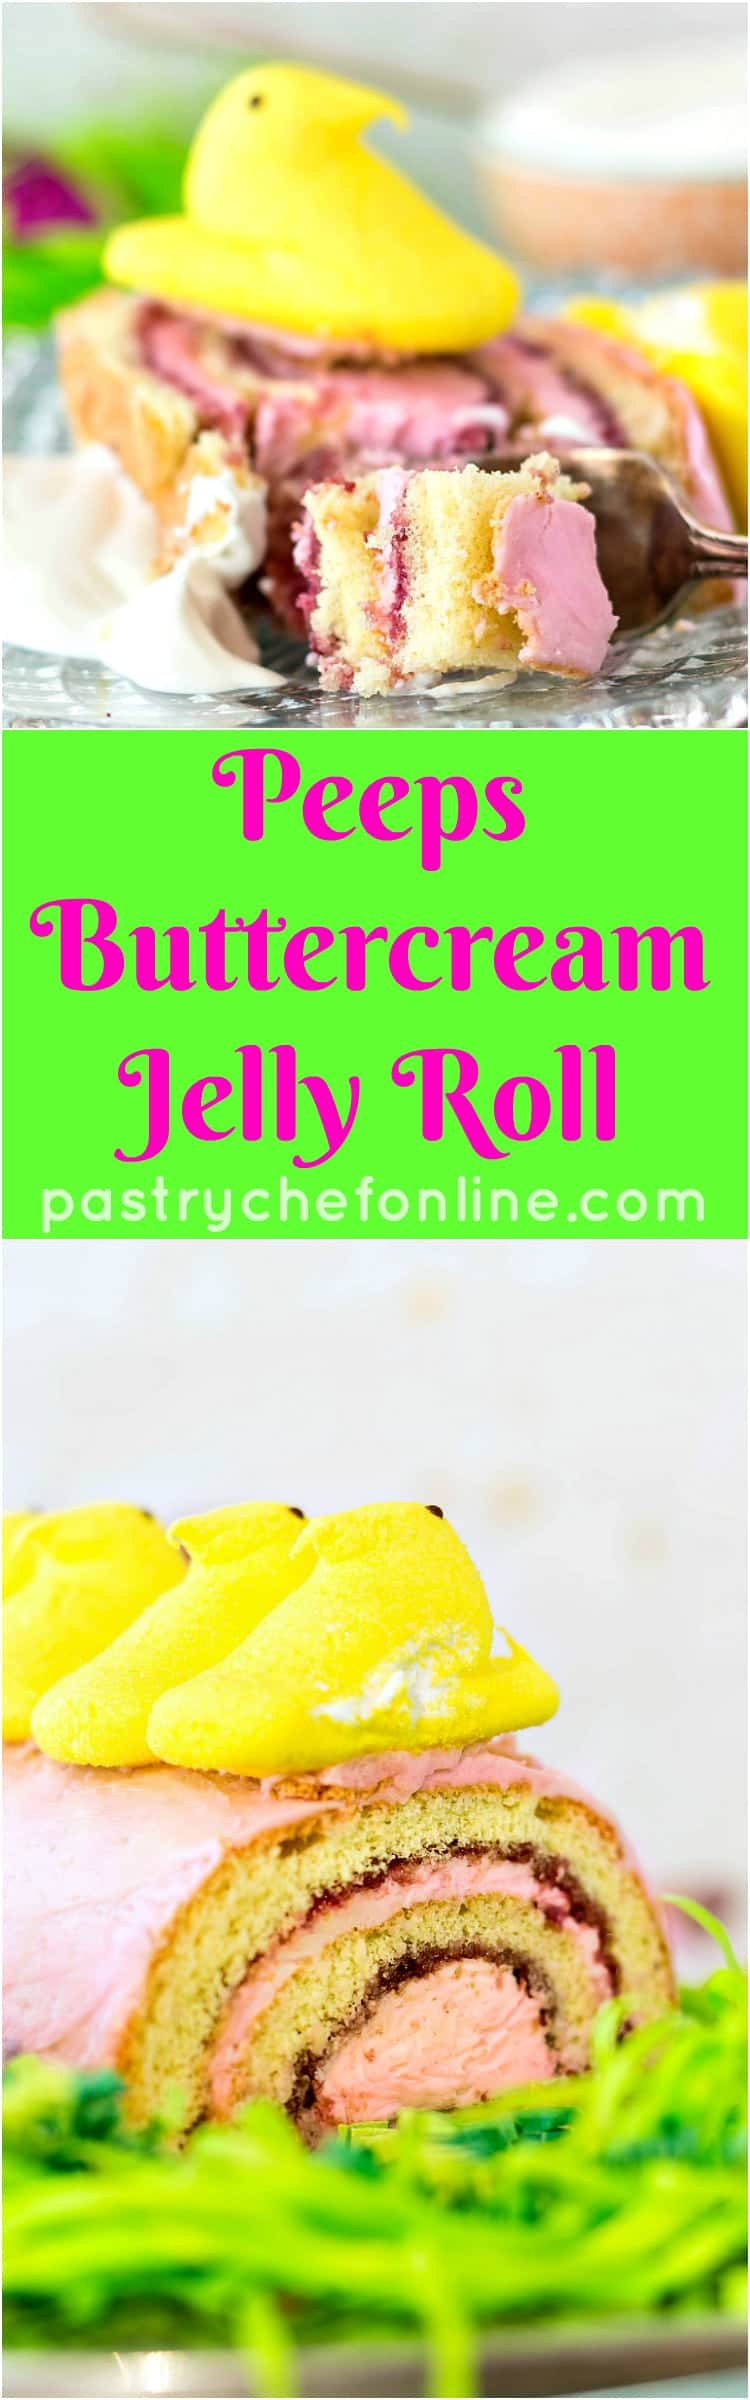 long pin image for Peeps jelly roll text reads Peeps Buttercream Jelly Roll